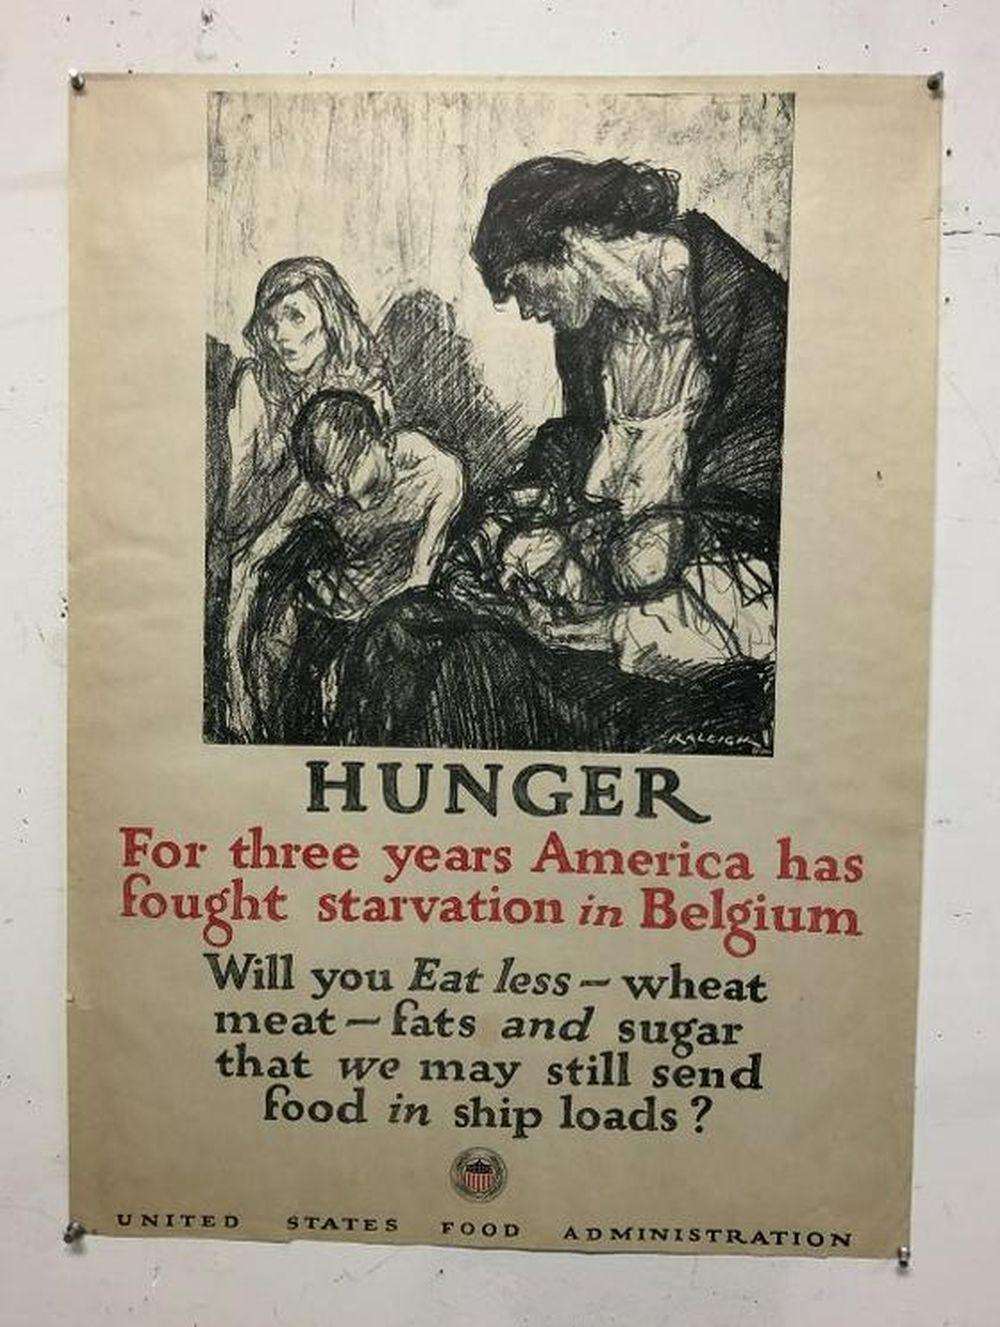 WWI HUNGER POSTER, ARTISIT IS RALEIGH, POSTER MEASURES